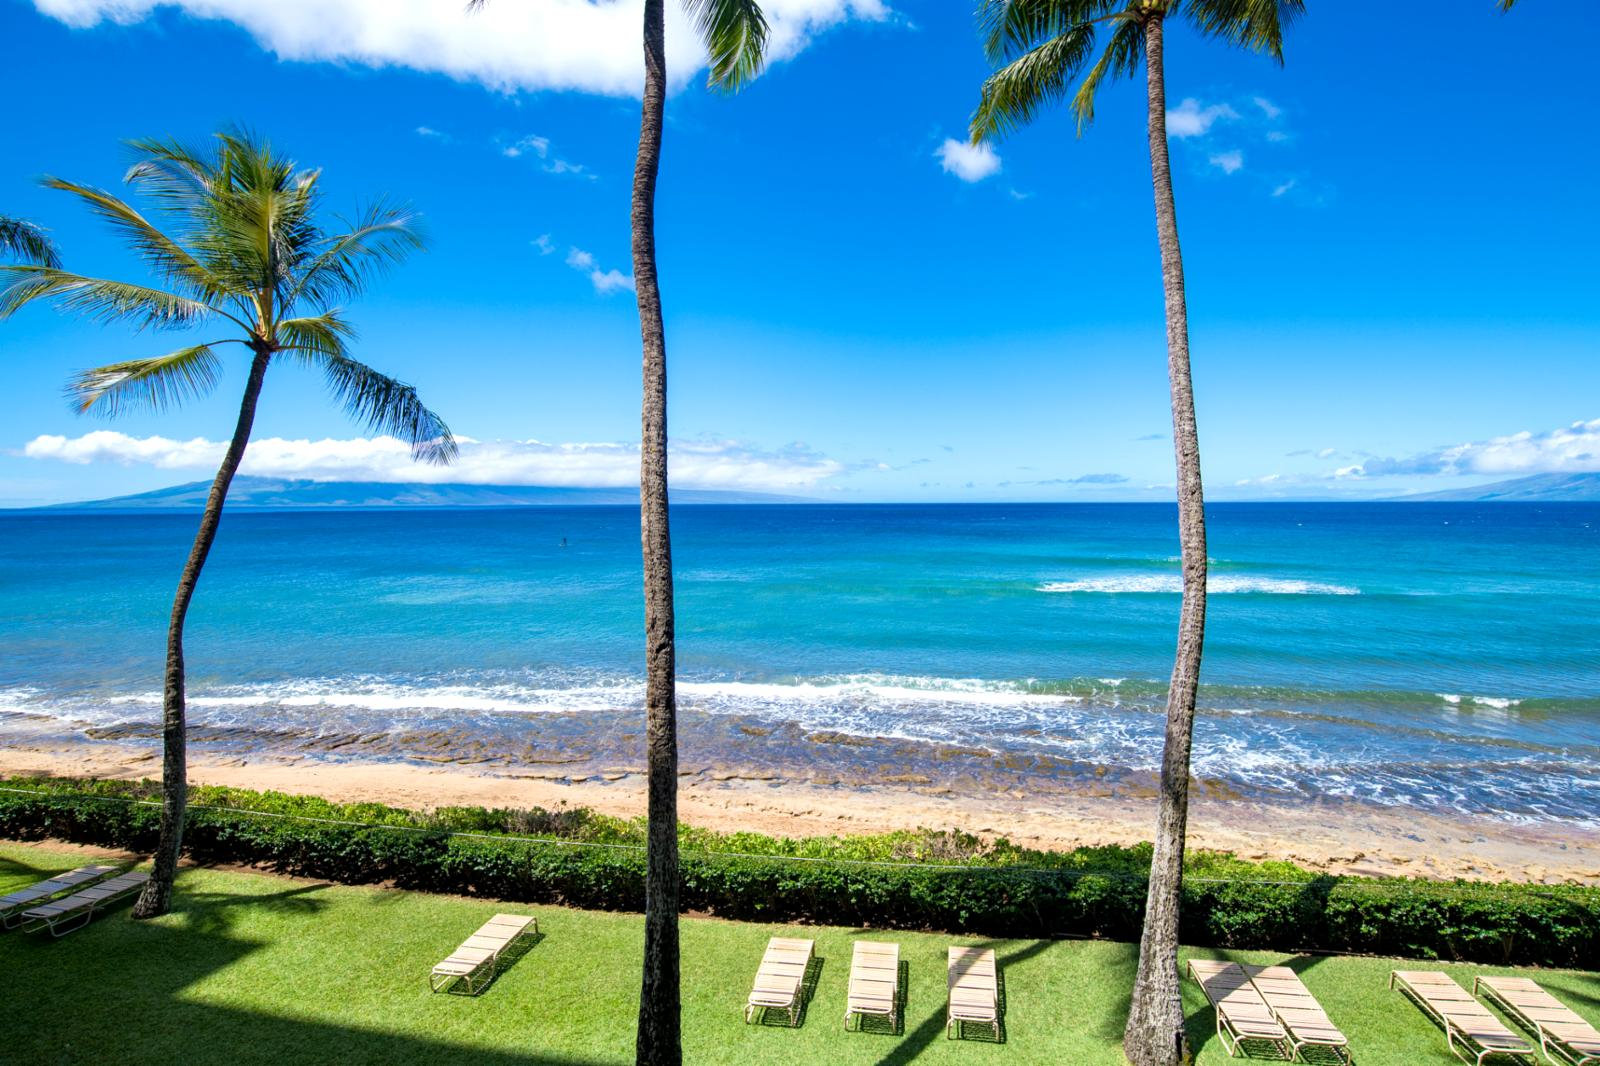 Epic studio, Lanai and Molokai views jaw dropping aqua marine views!